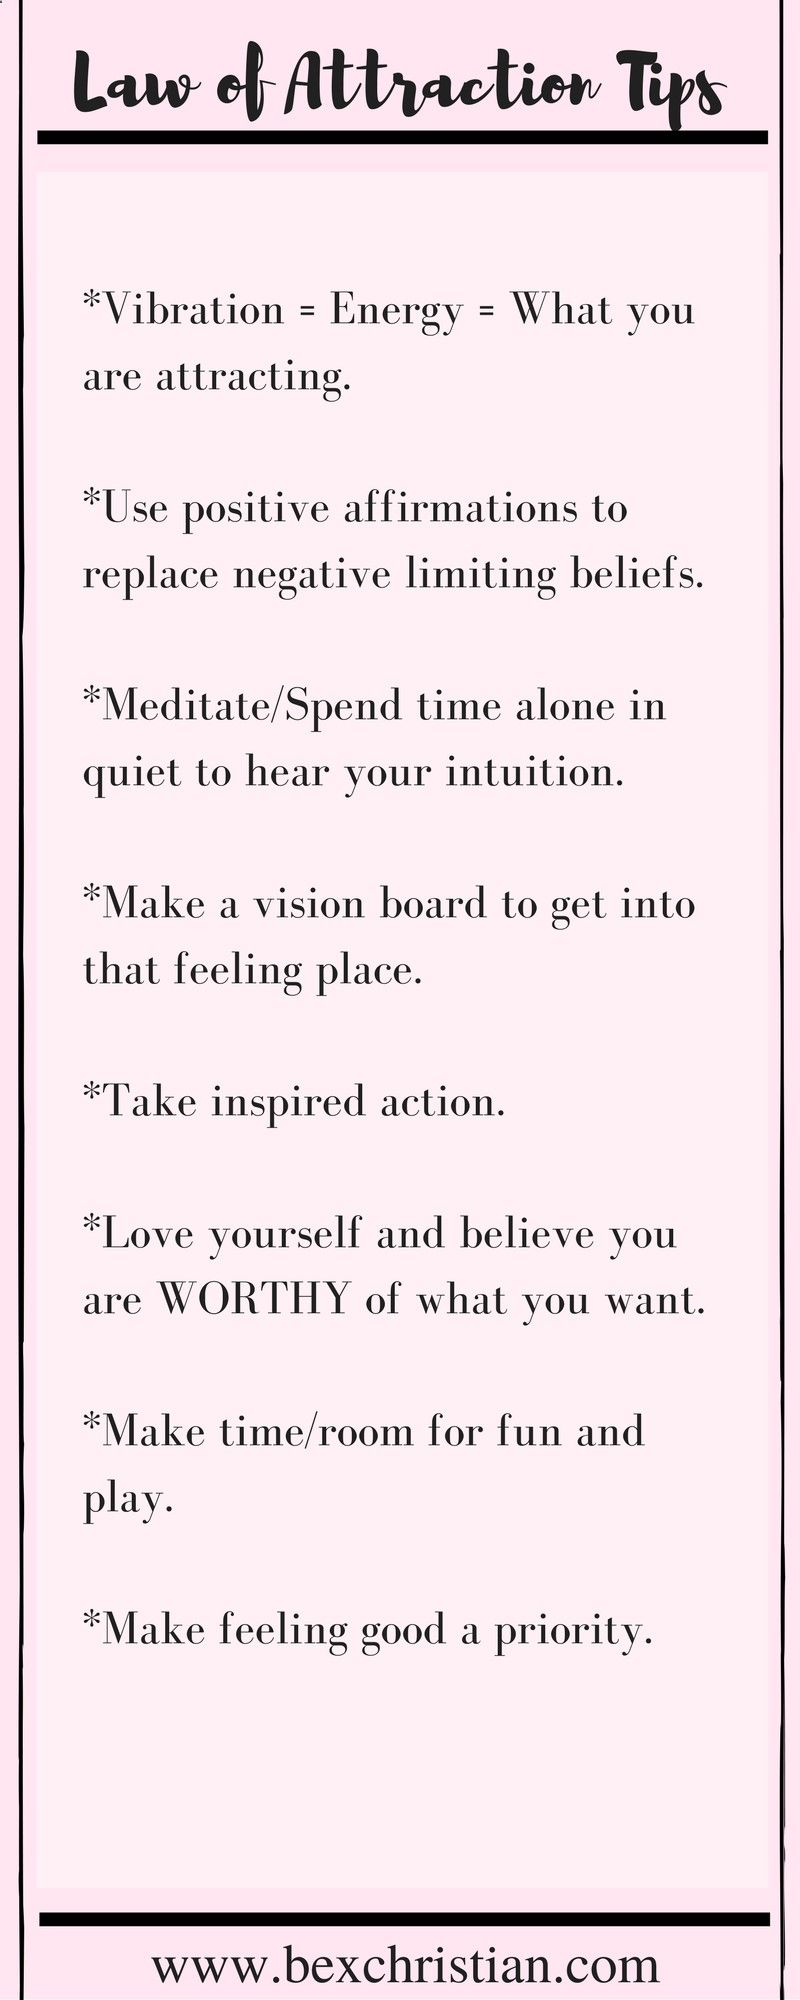 Some basic tips for using the law of attraction and practicing self love. Click through for more or pin to save for later! www.bexchristian.comhttp://www.bexchristian.com/